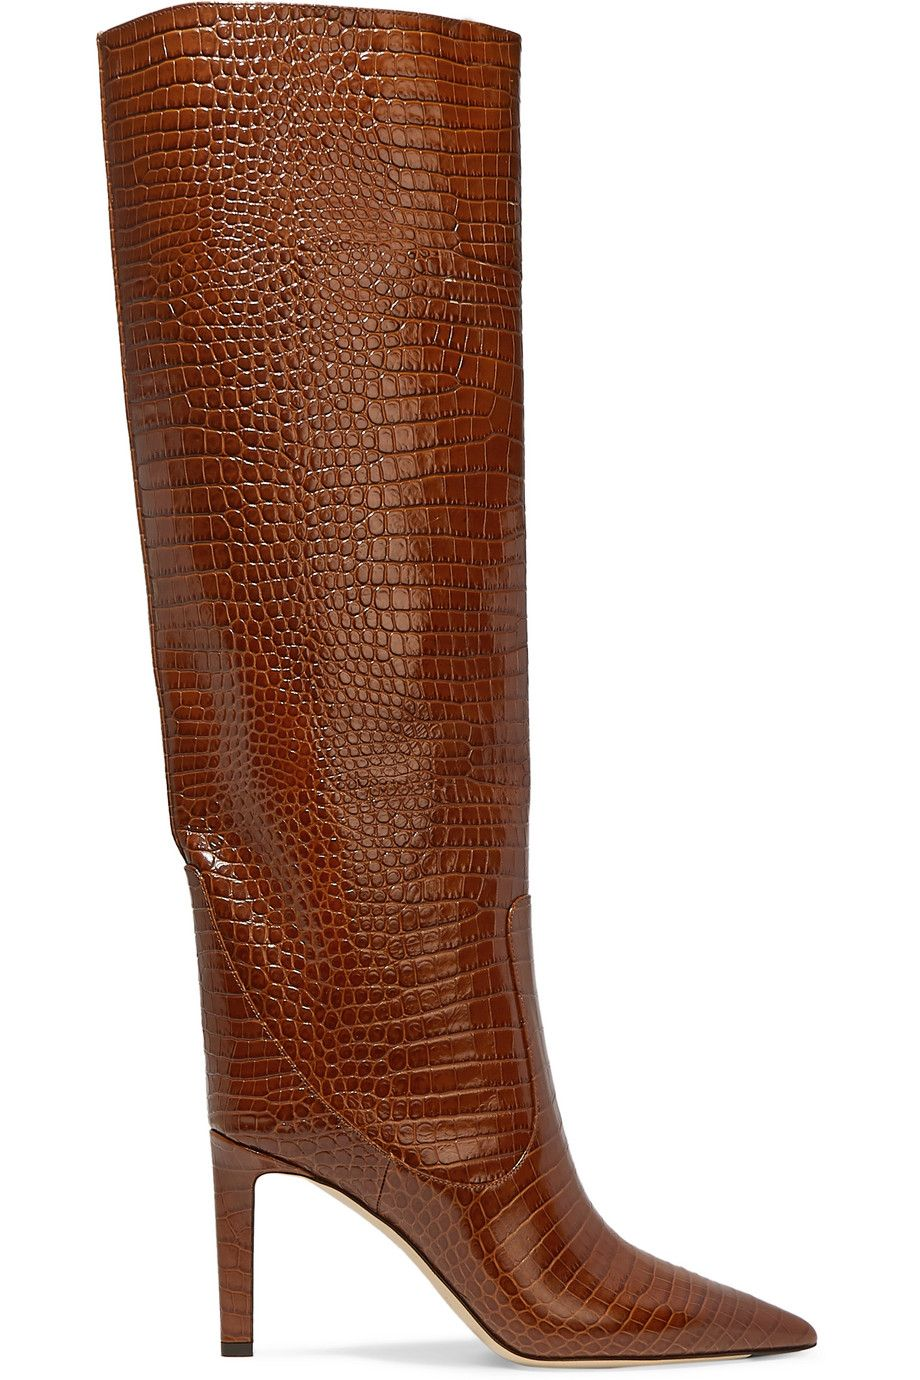 shop-mavis-85-tan-croc-effect-leather-knee-boots